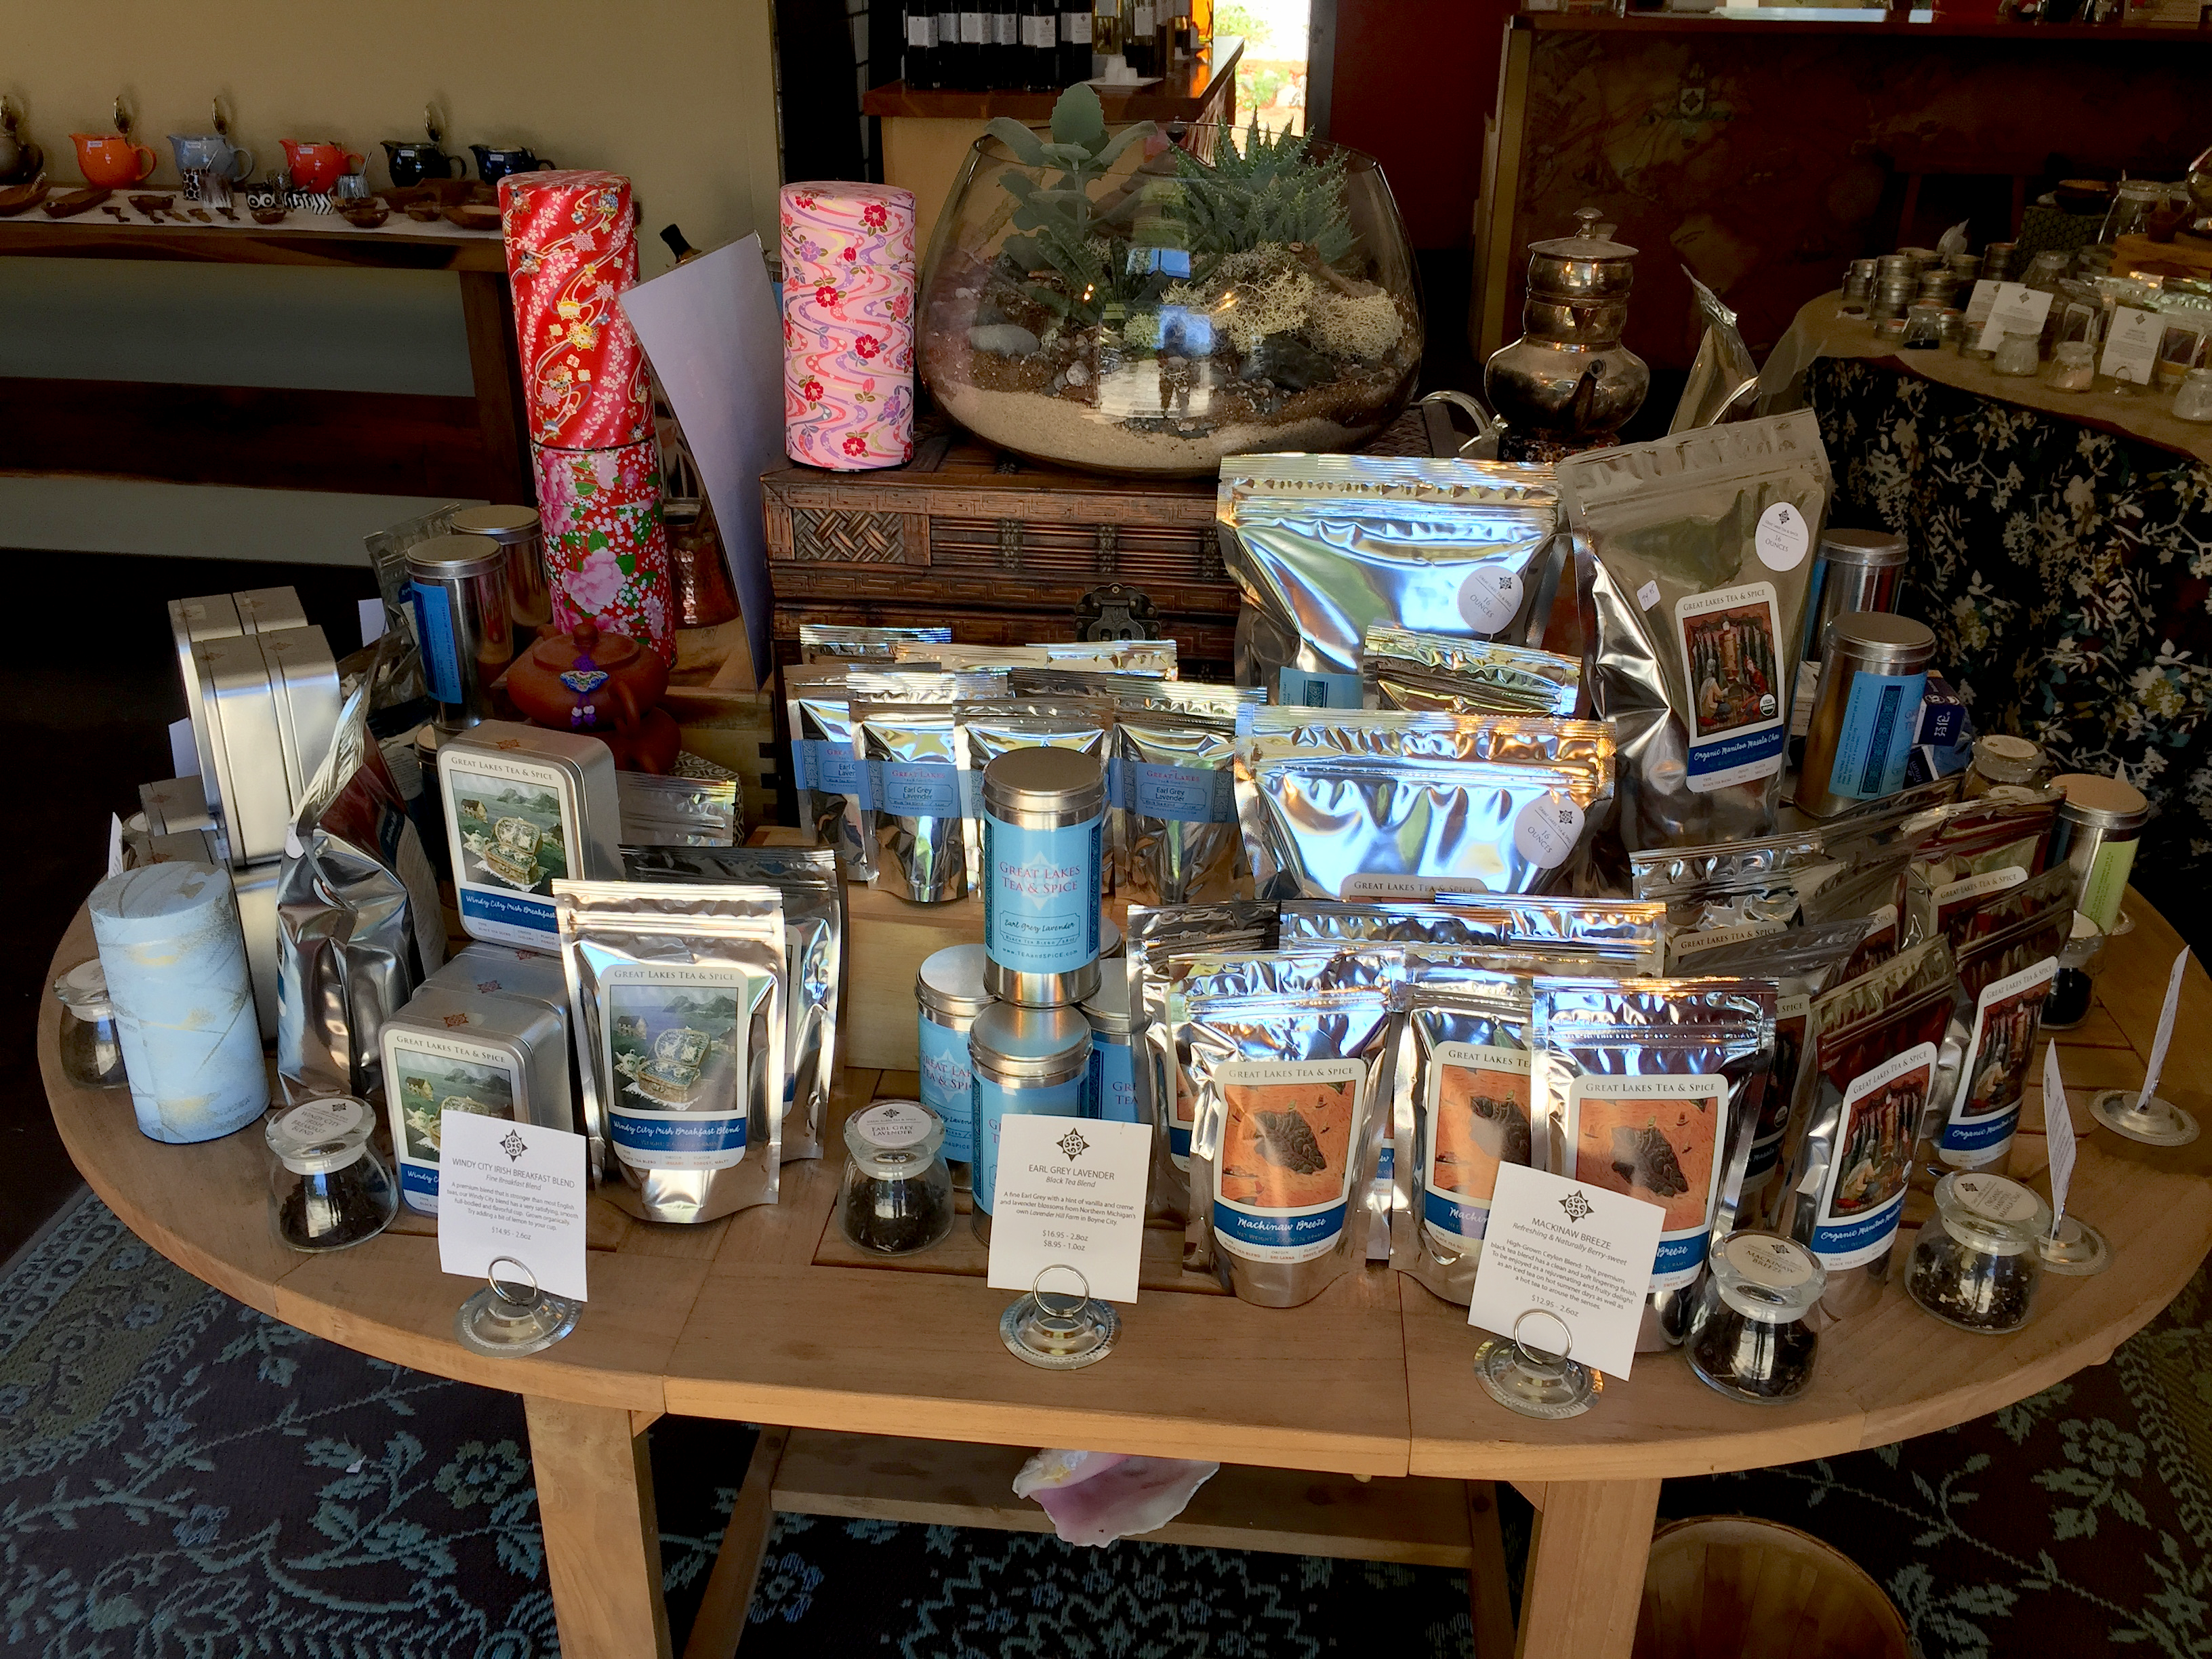 Great Lakes Tea & Spice Co. shop display by Jocilyn Mors is licensed under a Creative Commons Attribution-ShareAlike 4.0 International License.